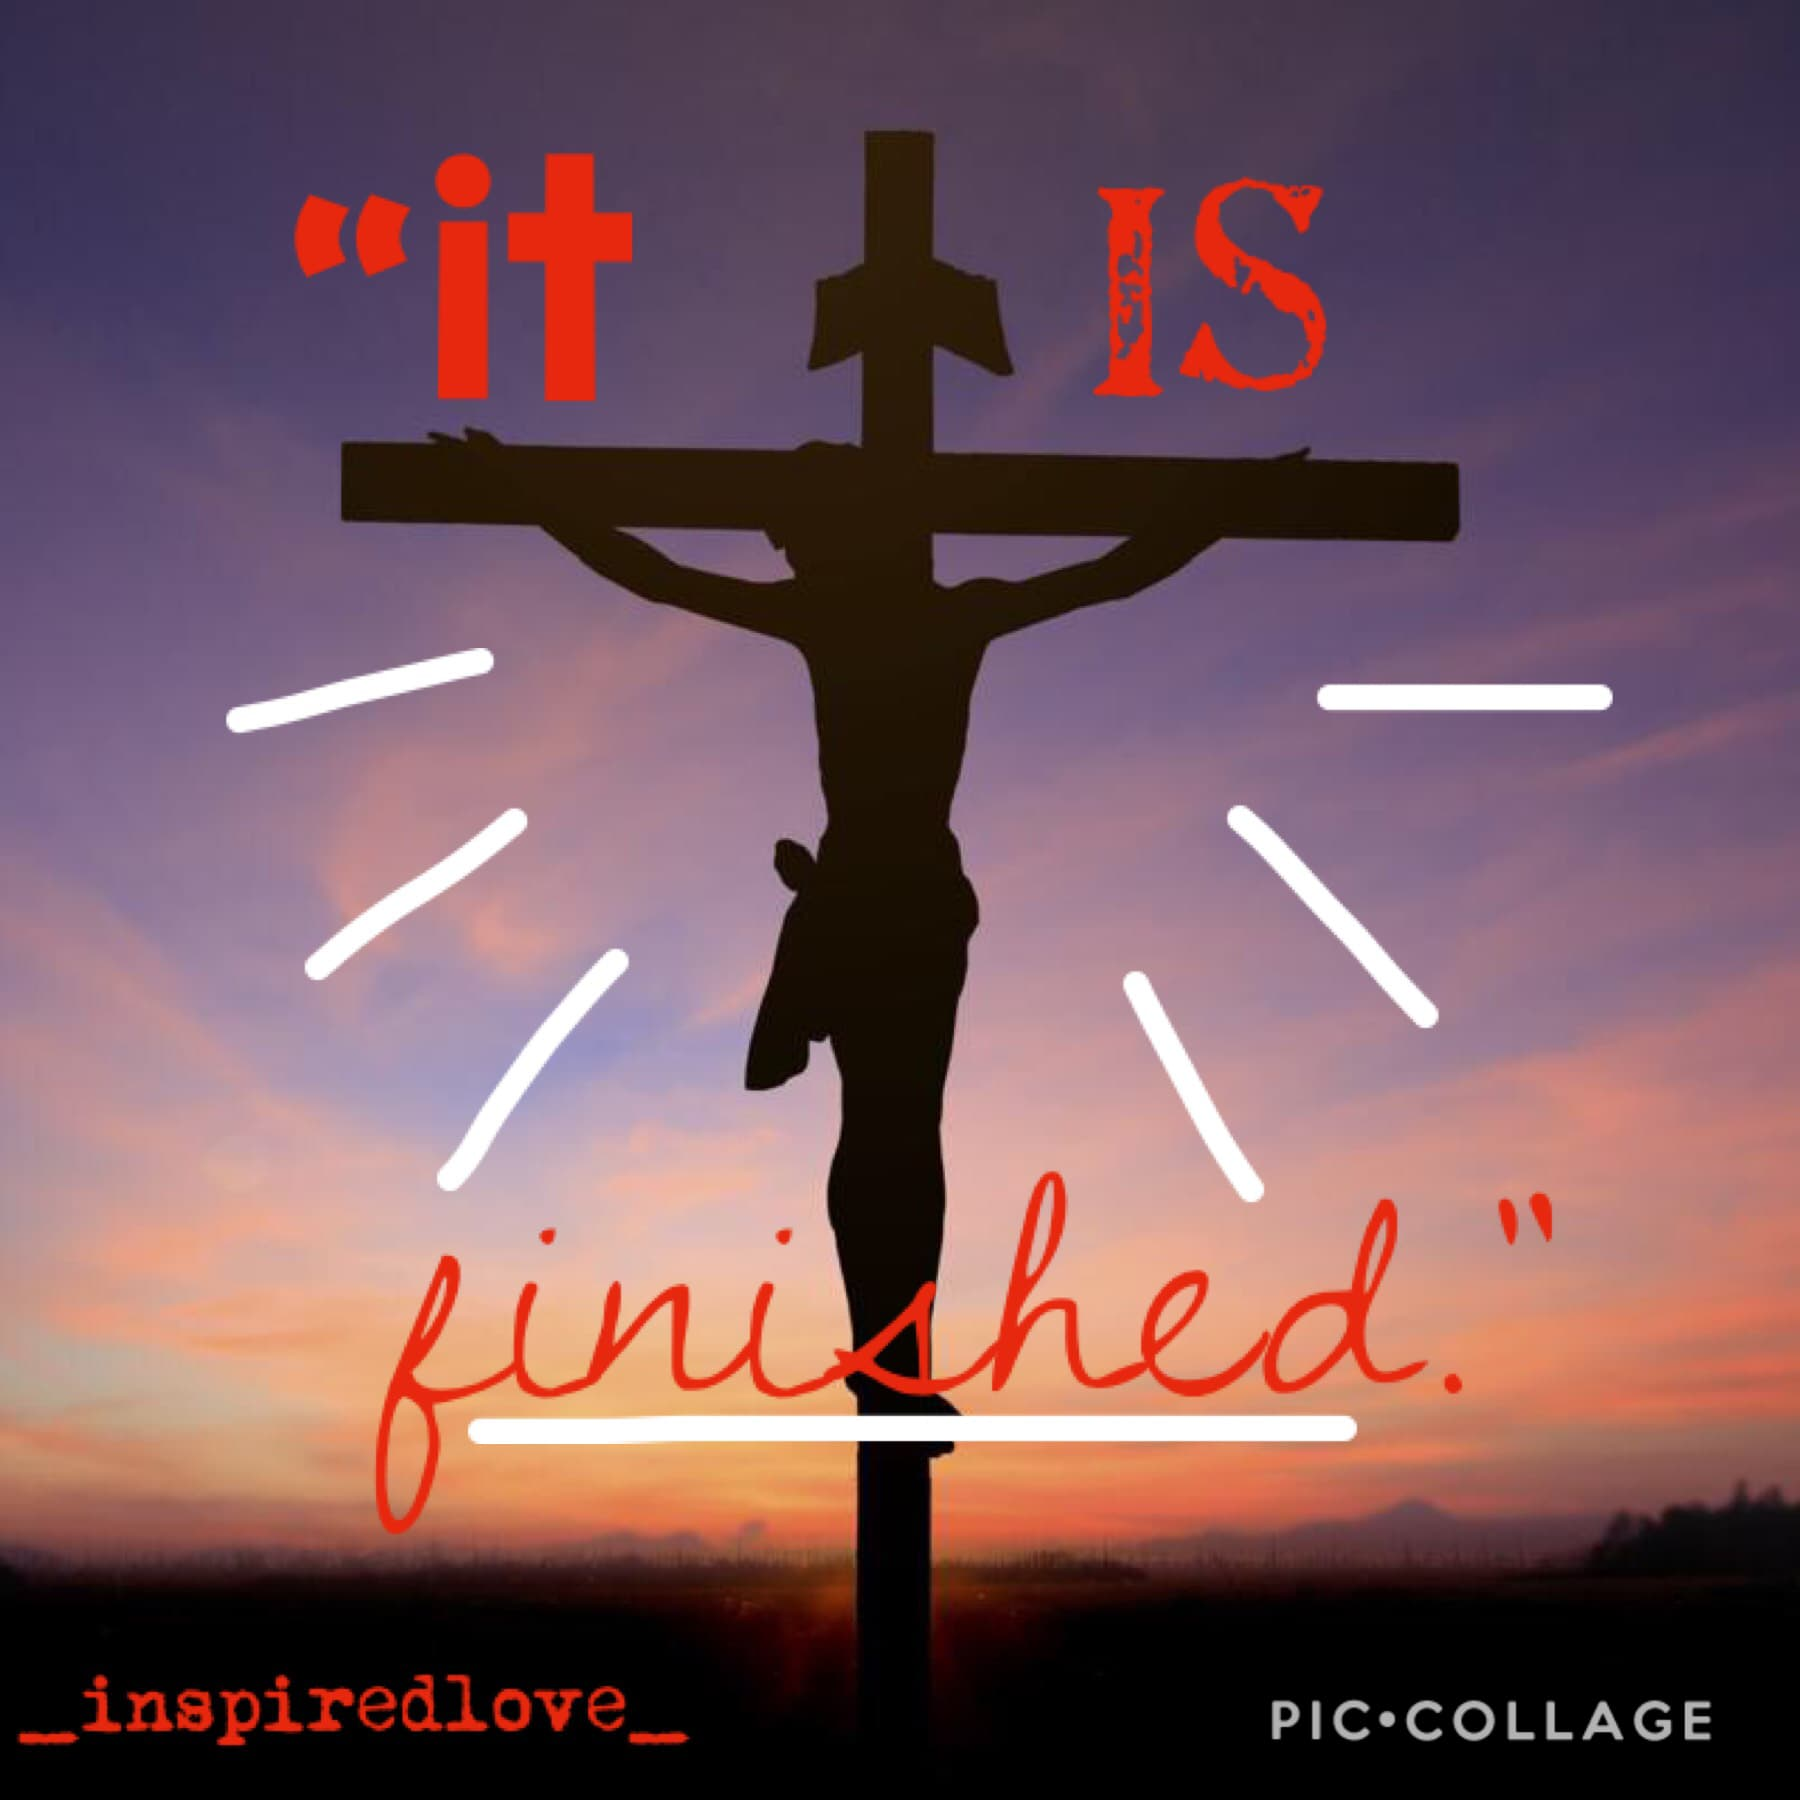 """it is Good Friday and i'm glad to say i'm celebrating it. i wanted to make this because what Jesus did for us was indescribable and we don't deserve it but he still died for us. it's truly incredible. """"I couldn't earn it, and I don't deserve it, still you"""